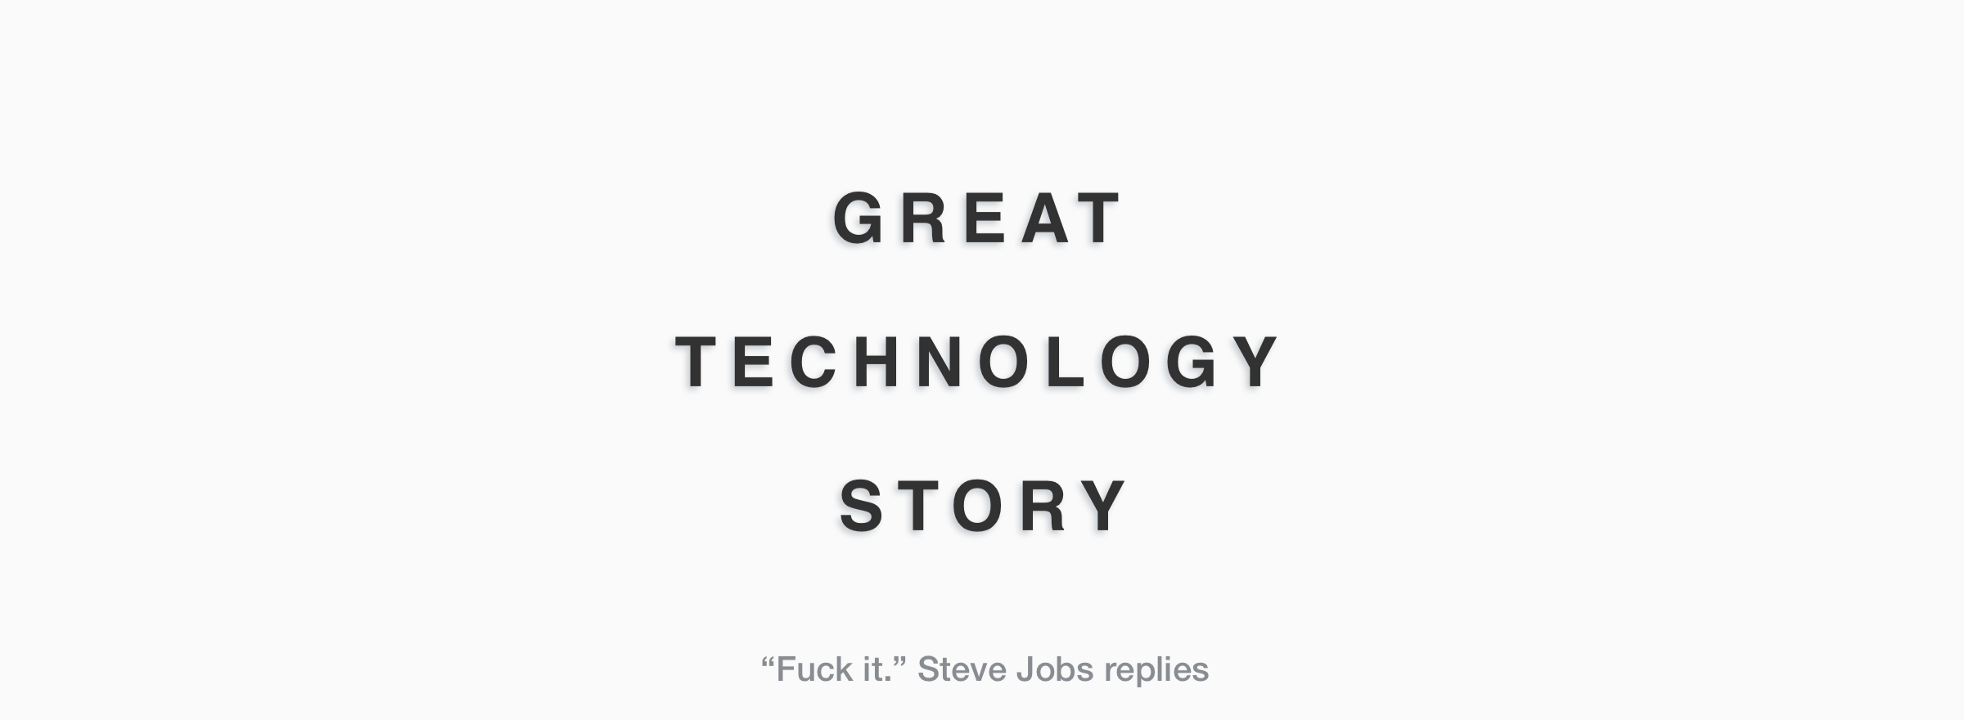 Great Technology Story